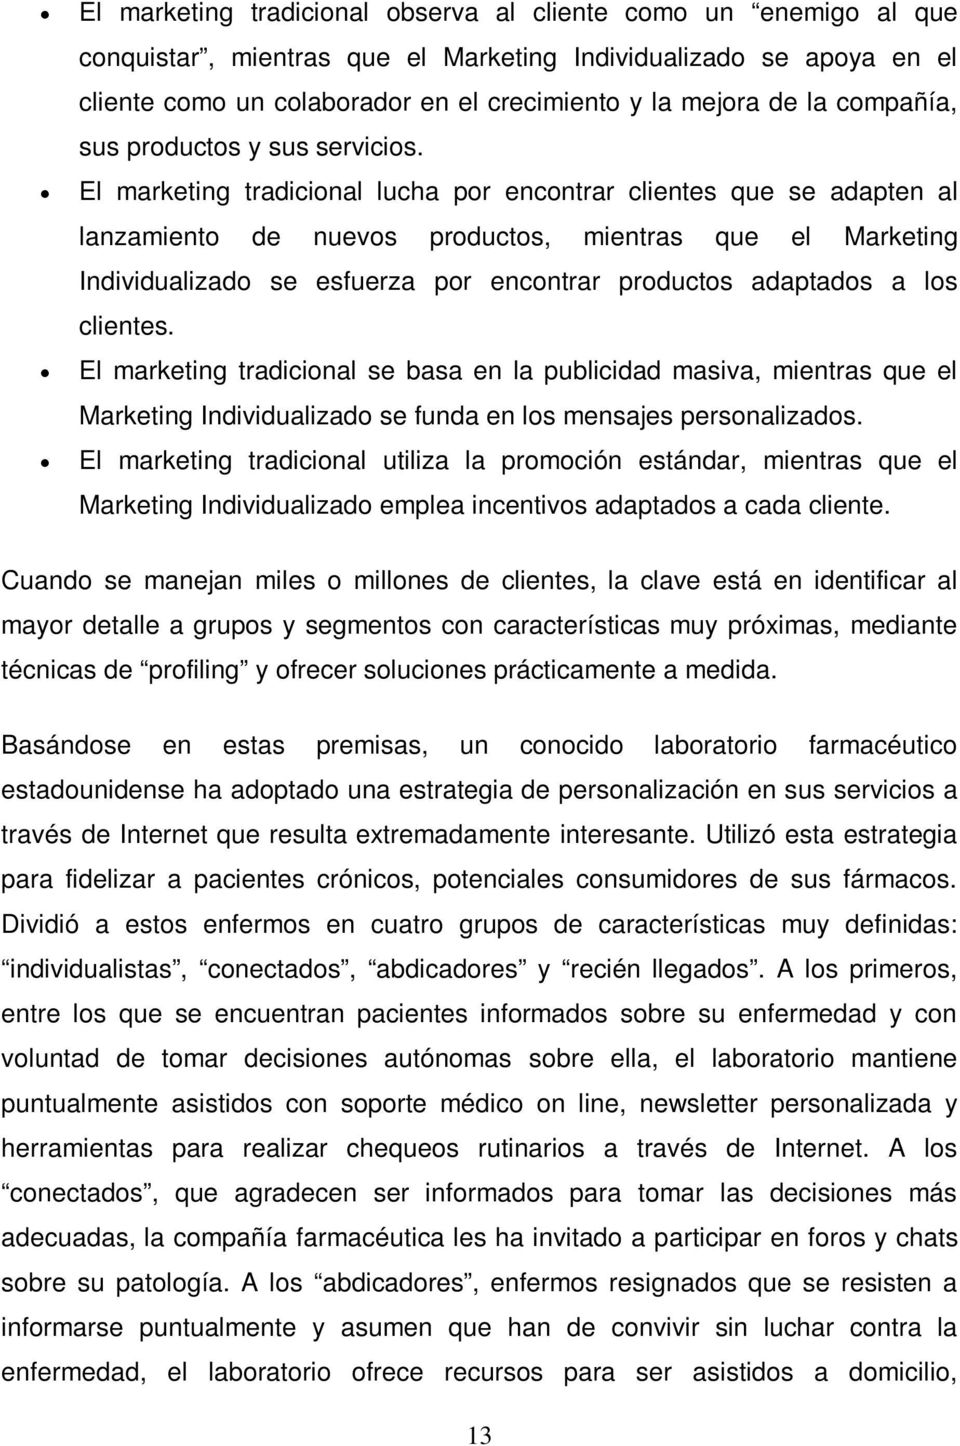 El marketing tradicional lucha por encontrar clientes que se adapten al lanzamiento de nuevos productos, mientras que el Marketing Individualizado se esfuerza por encontrar productos adaptados a los